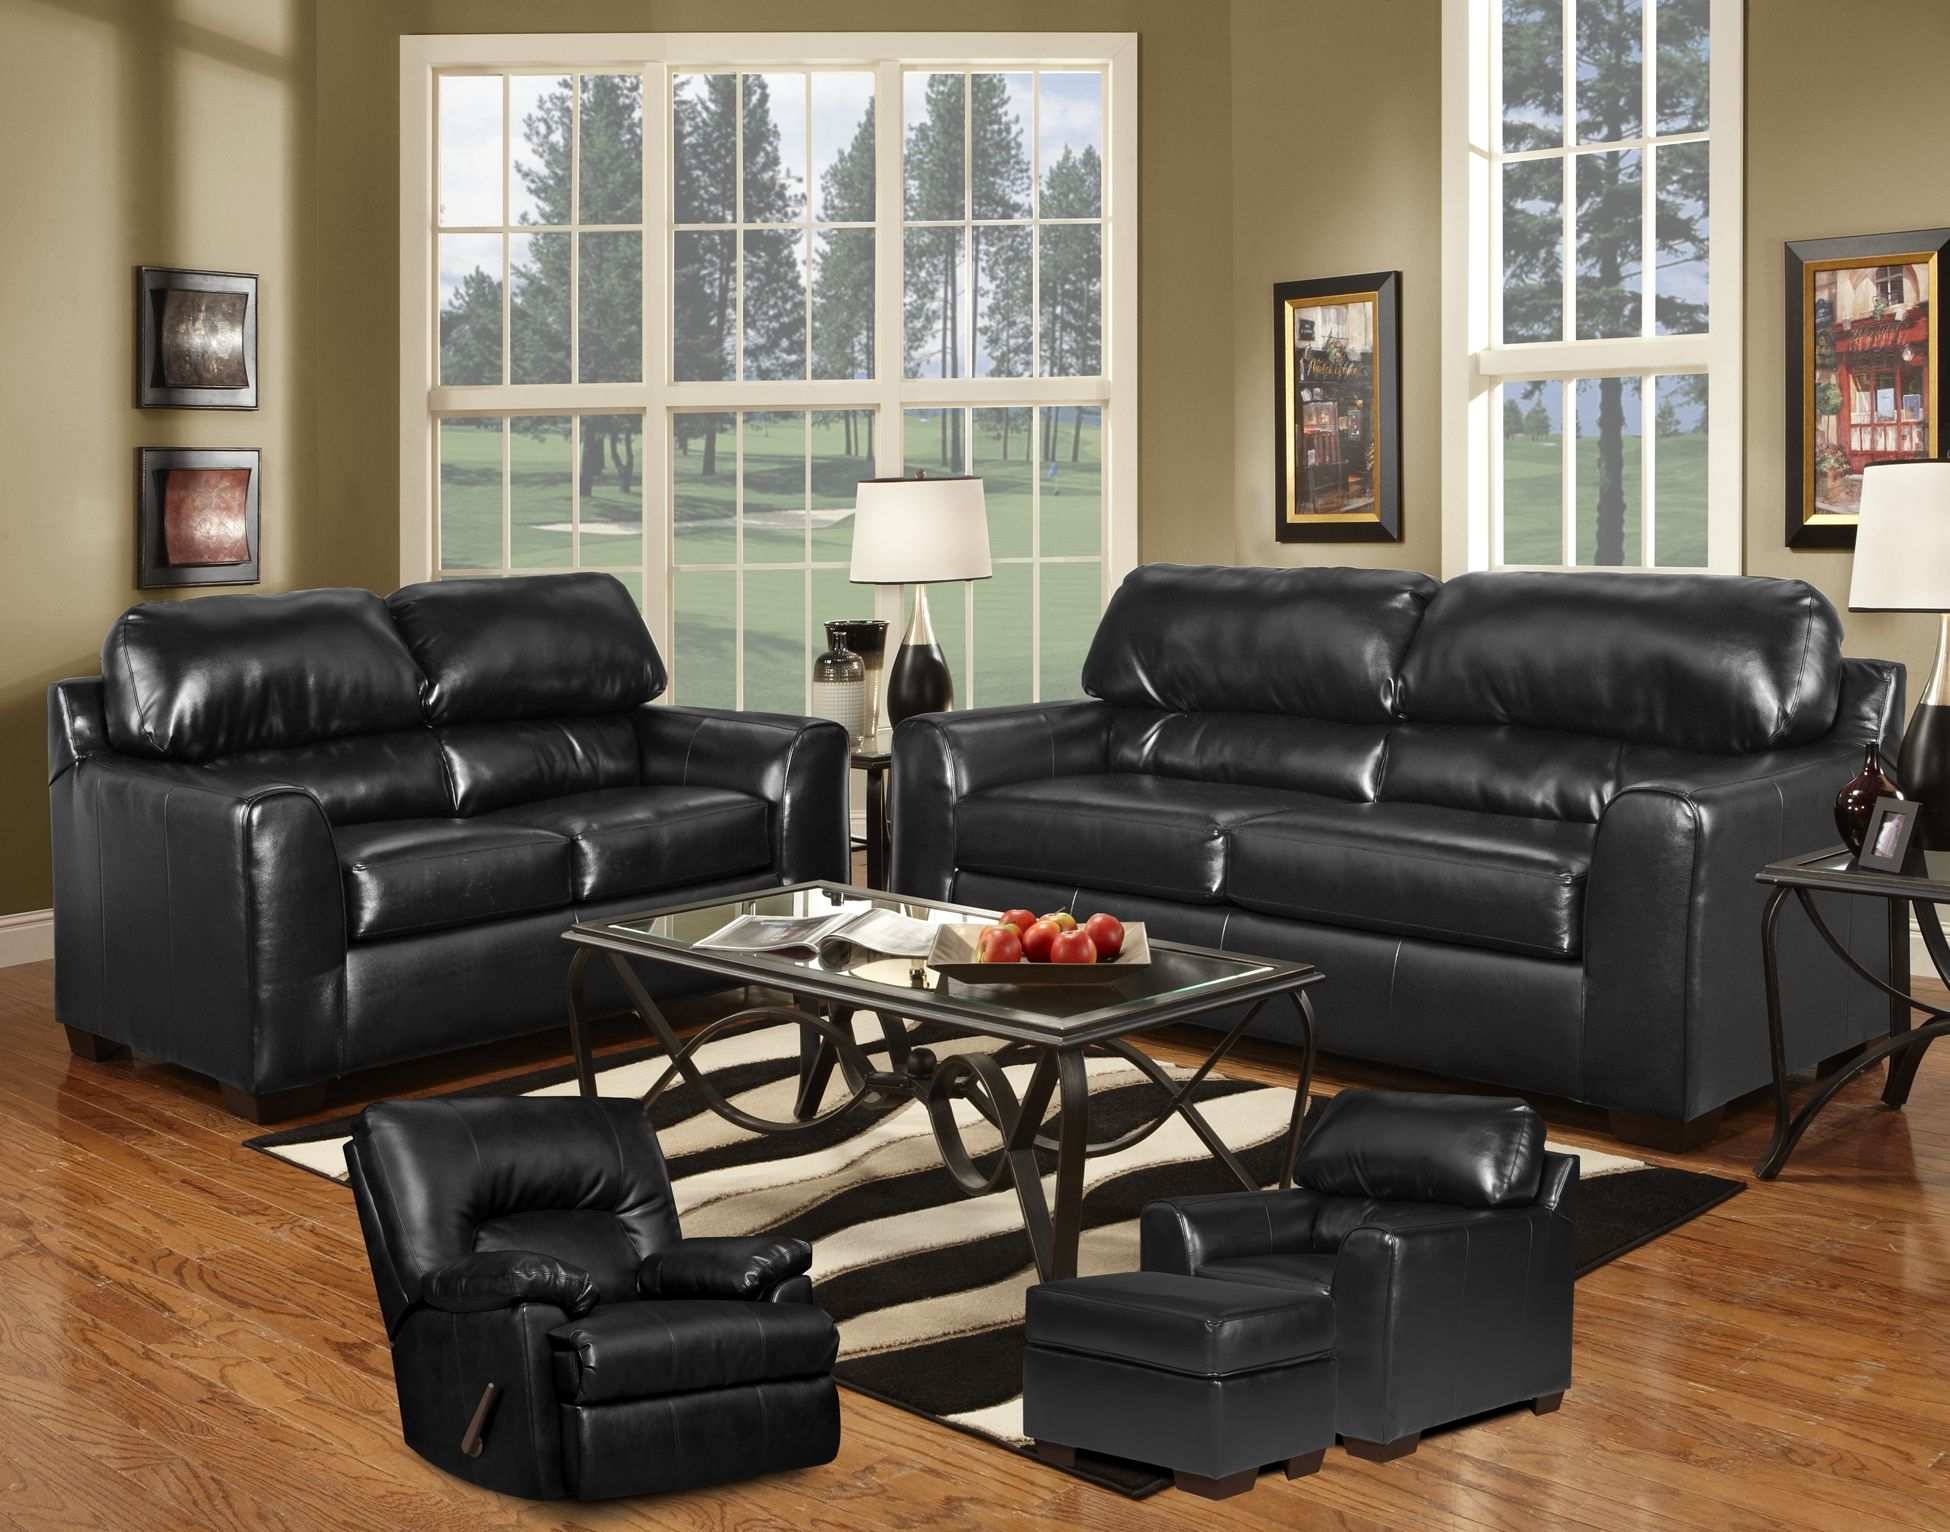 simmons bonded leather sofa french style bench 39firenza 39 black and loveseat